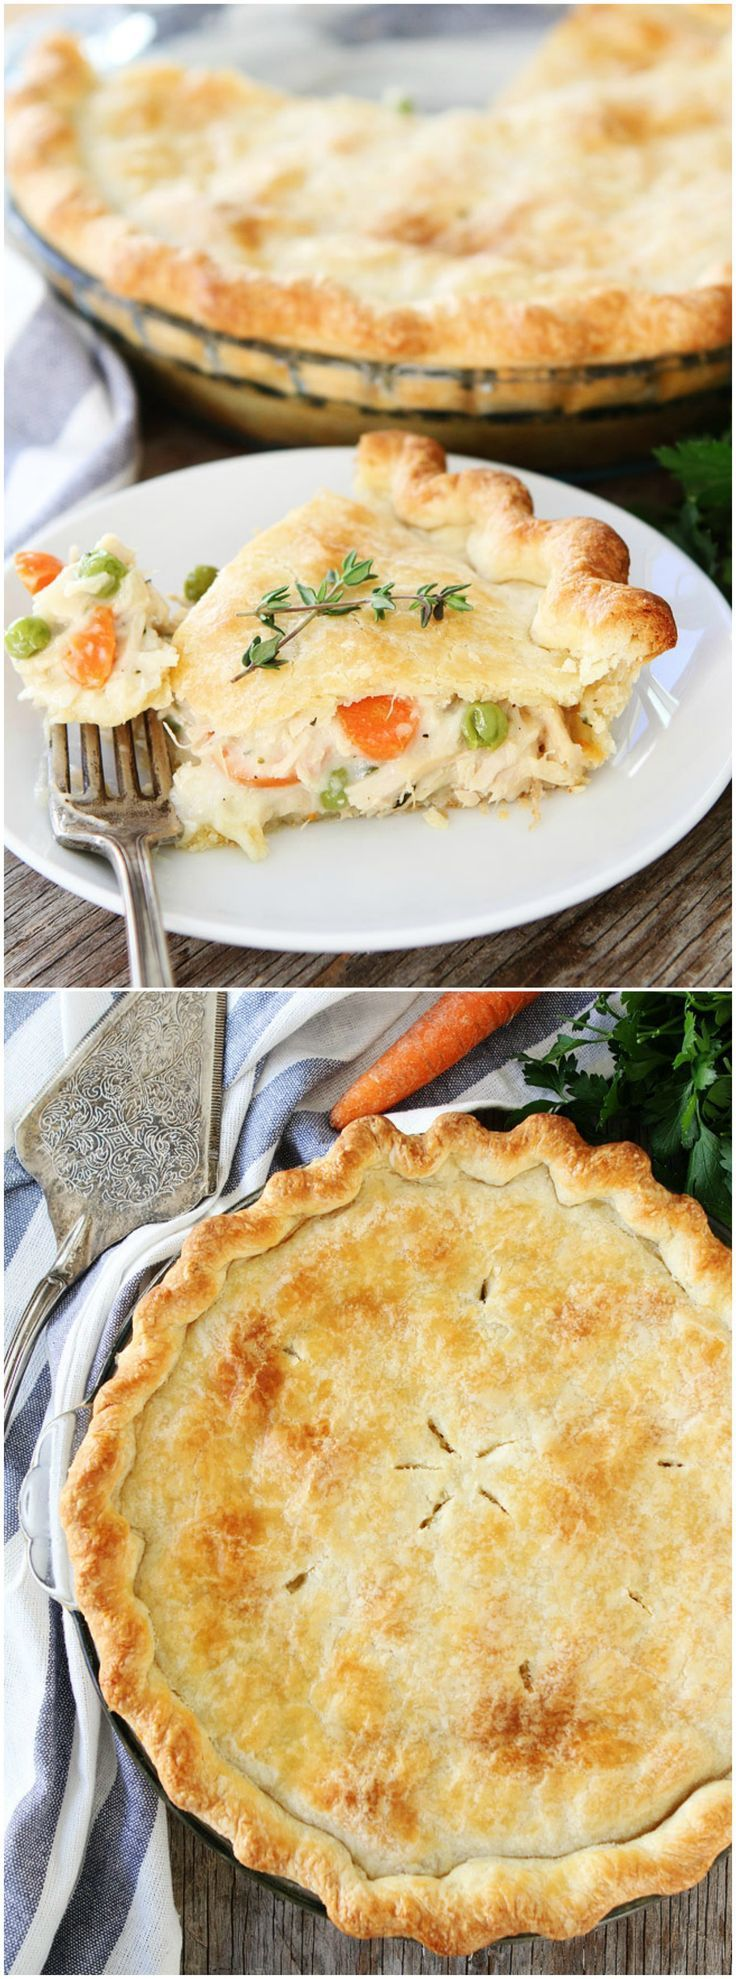 Chicken Pot Pie Recipe on http://twopeasandtheirpod.com This classic homemade chicken pot pie is the ultimate comfort food and it freezes well too!